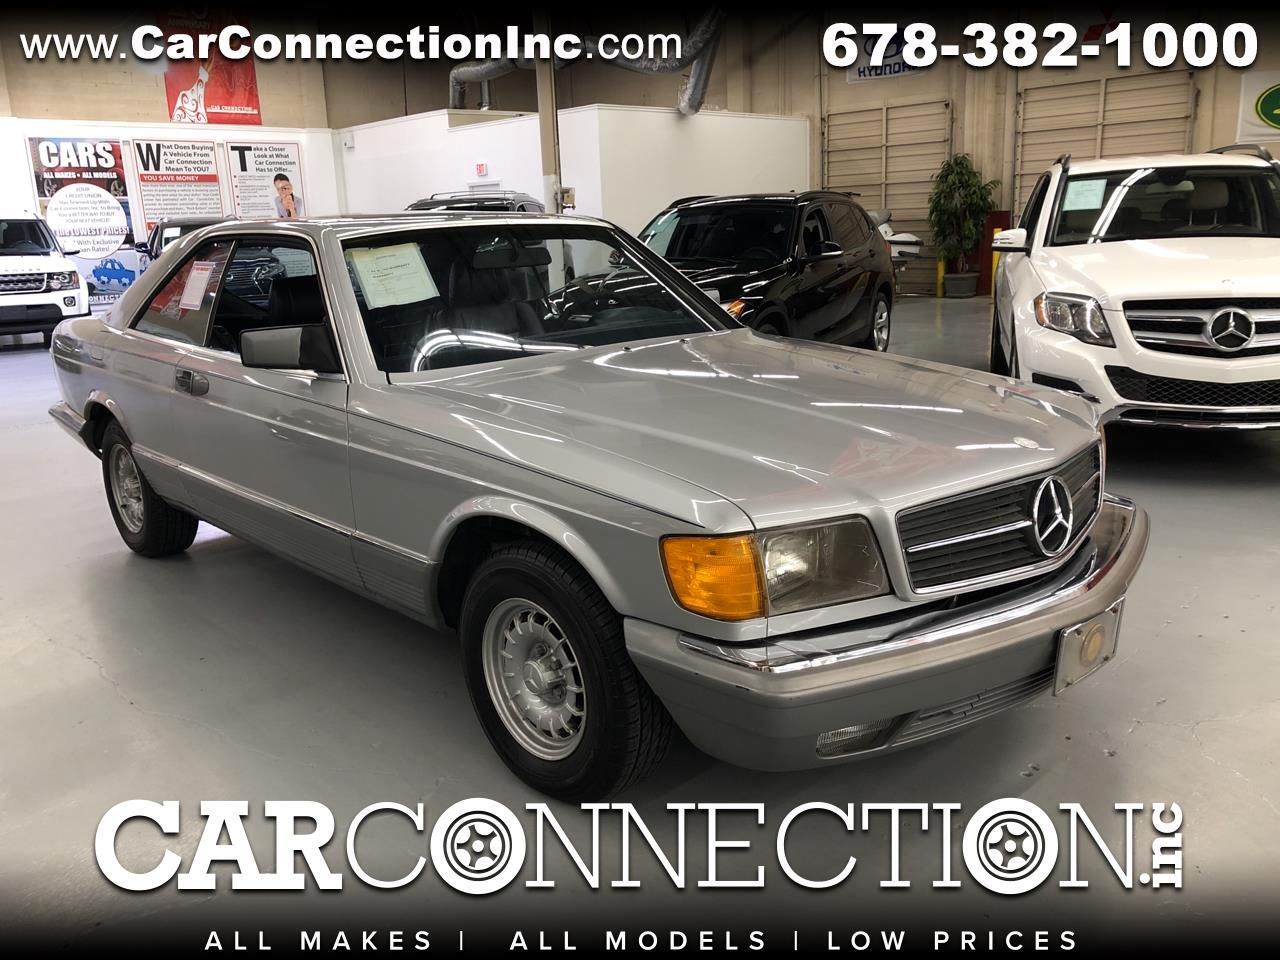 1983 Mercedes-Benz 380 Series 380SEC